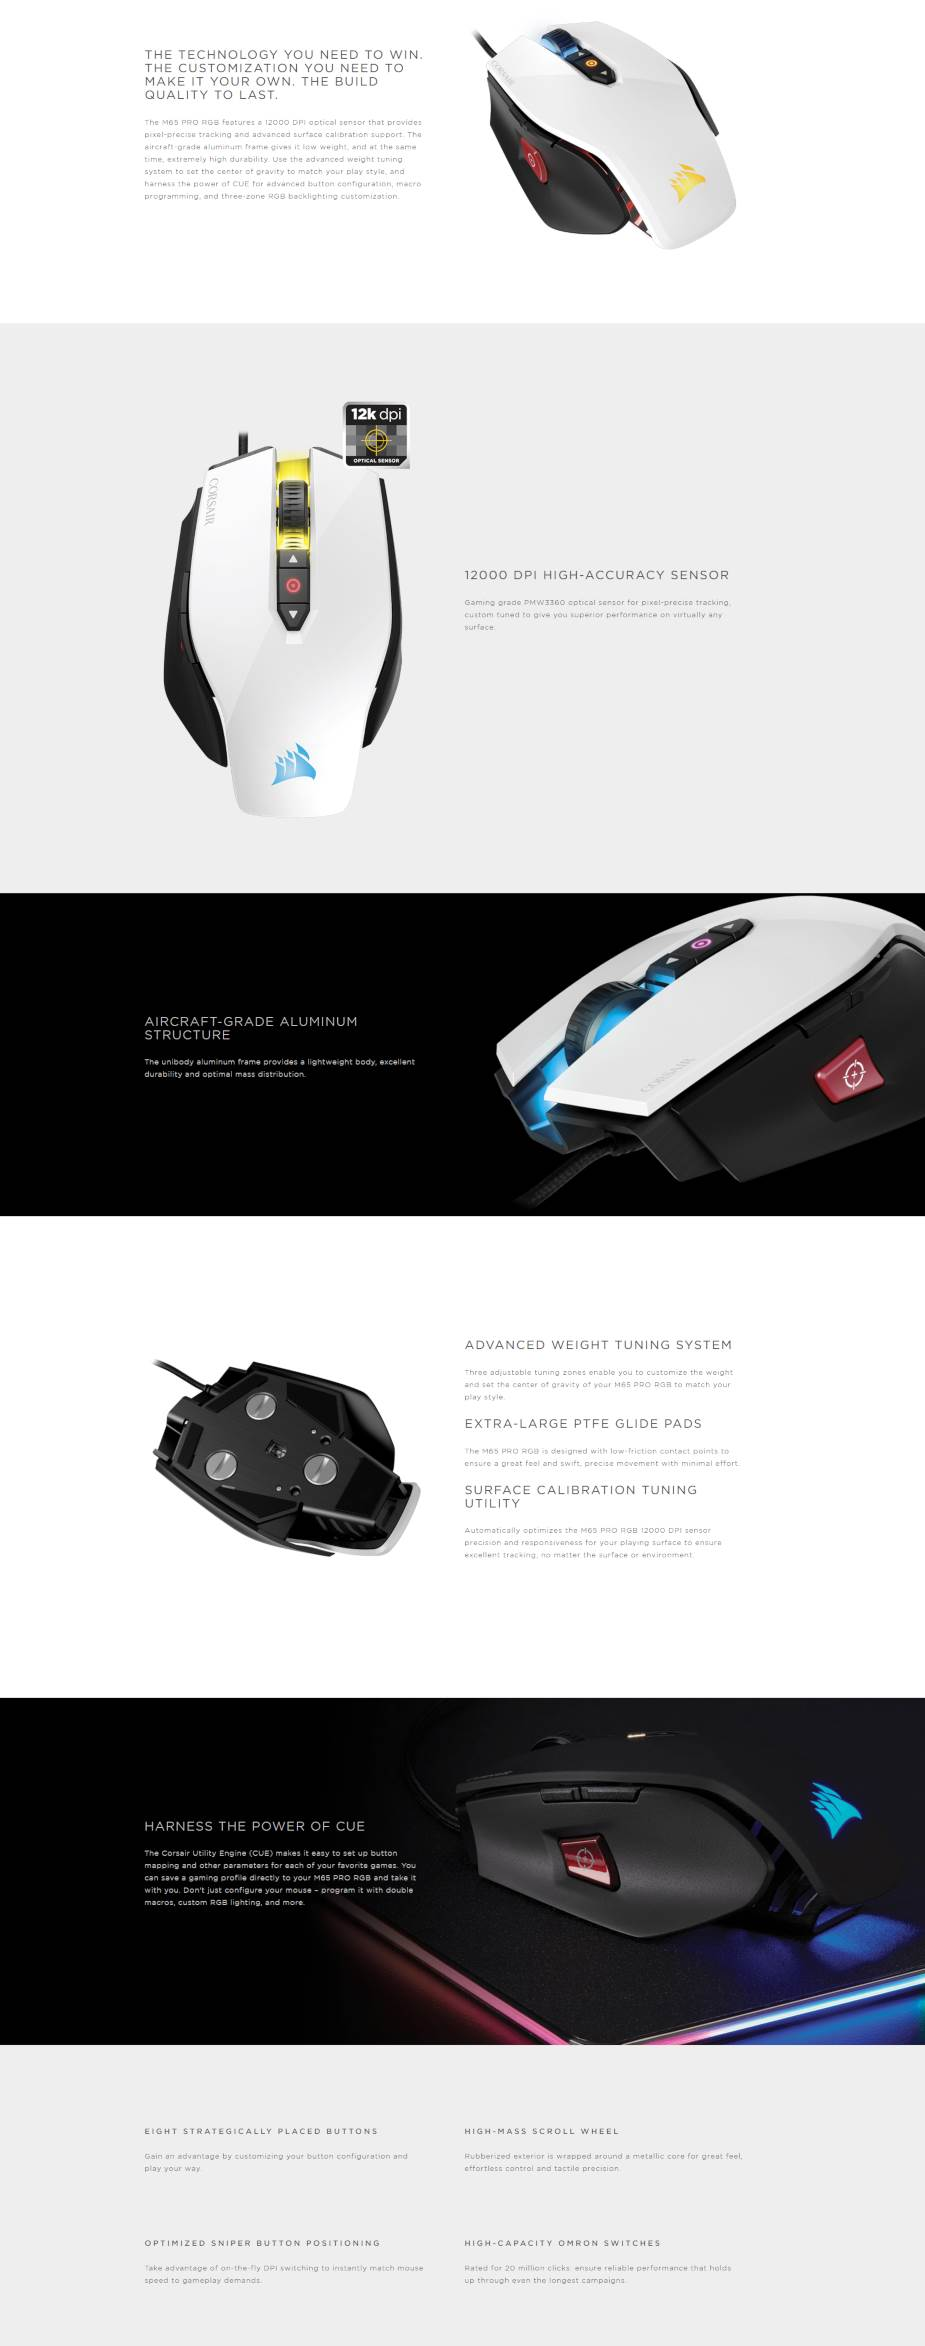 Corsair Gaming M65 Pro RGB FPS Optical Gaming Mouse - White - Overview